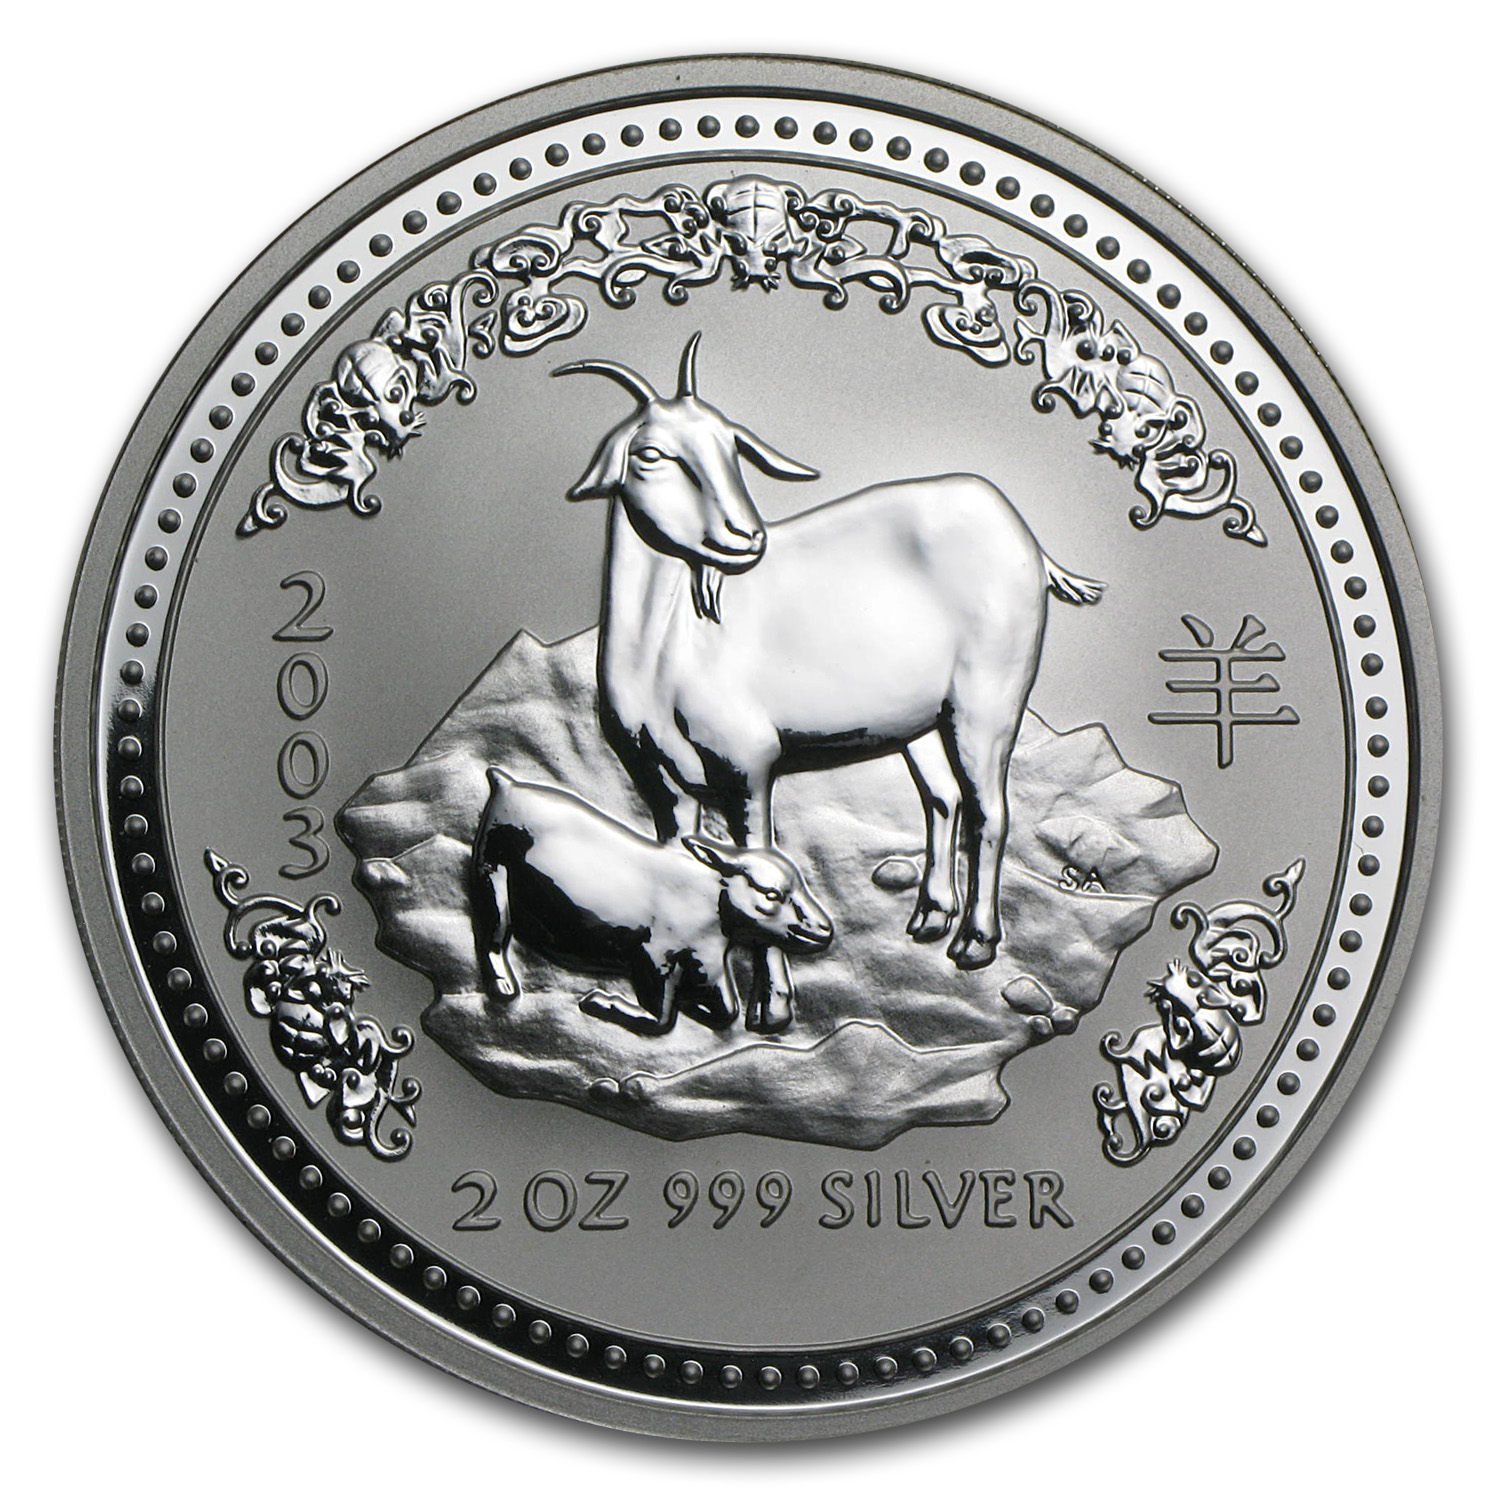 2003 2 oz Silver Lunar Year of the Goat (Series I)